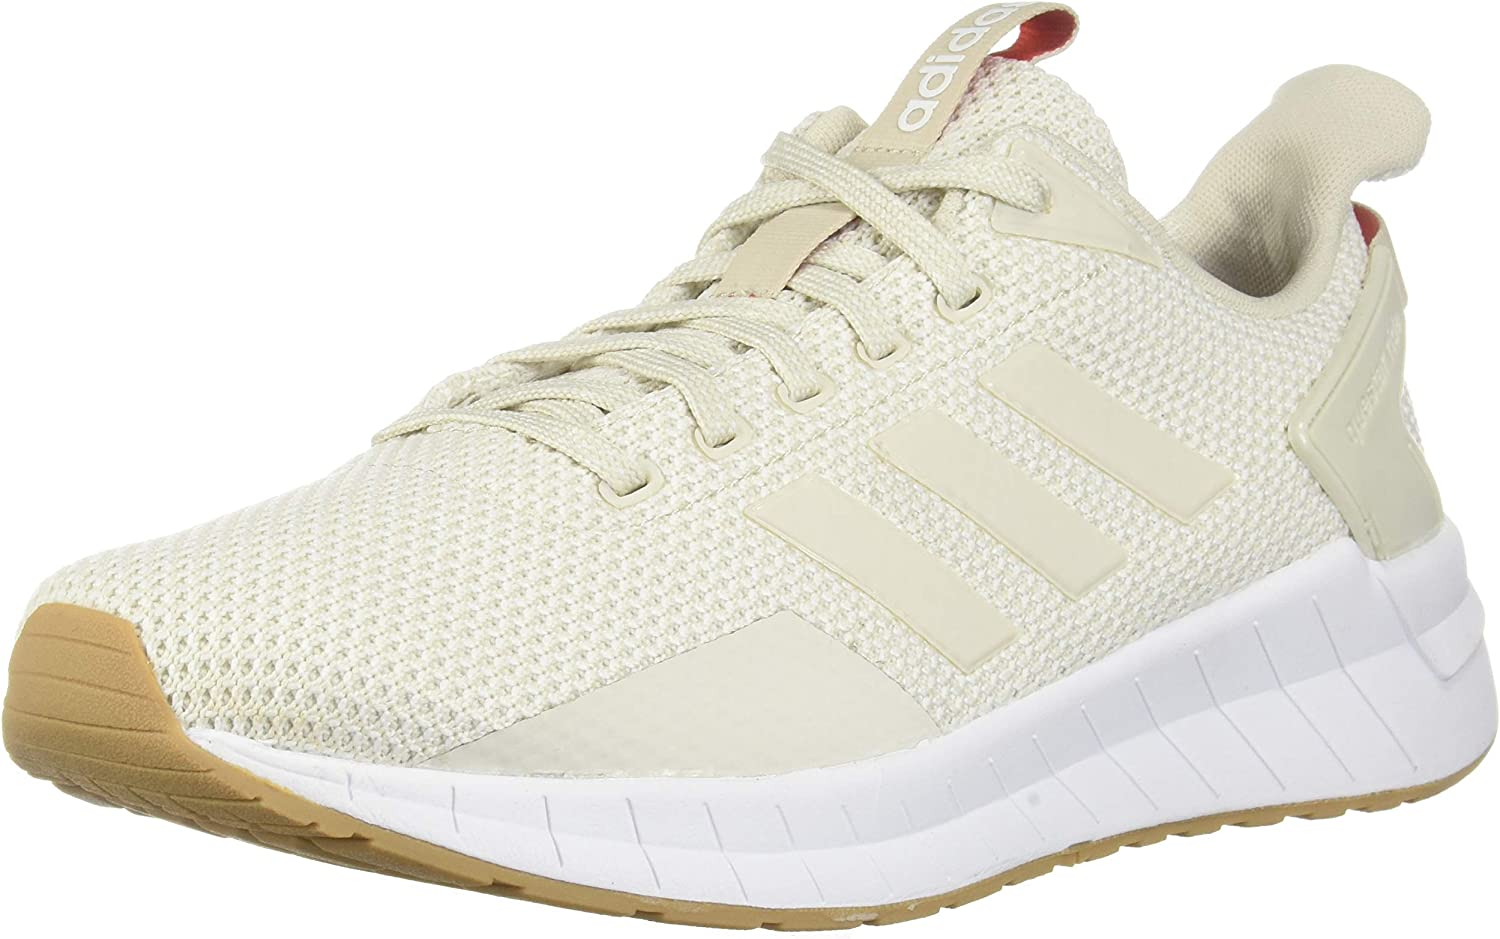 adidas Questar Ride Cloudfoam - Zapatillas de Running para Mujer, Color Blanco, Talla 39 2/3 EU: Amazon.es: Zapatos y complementos